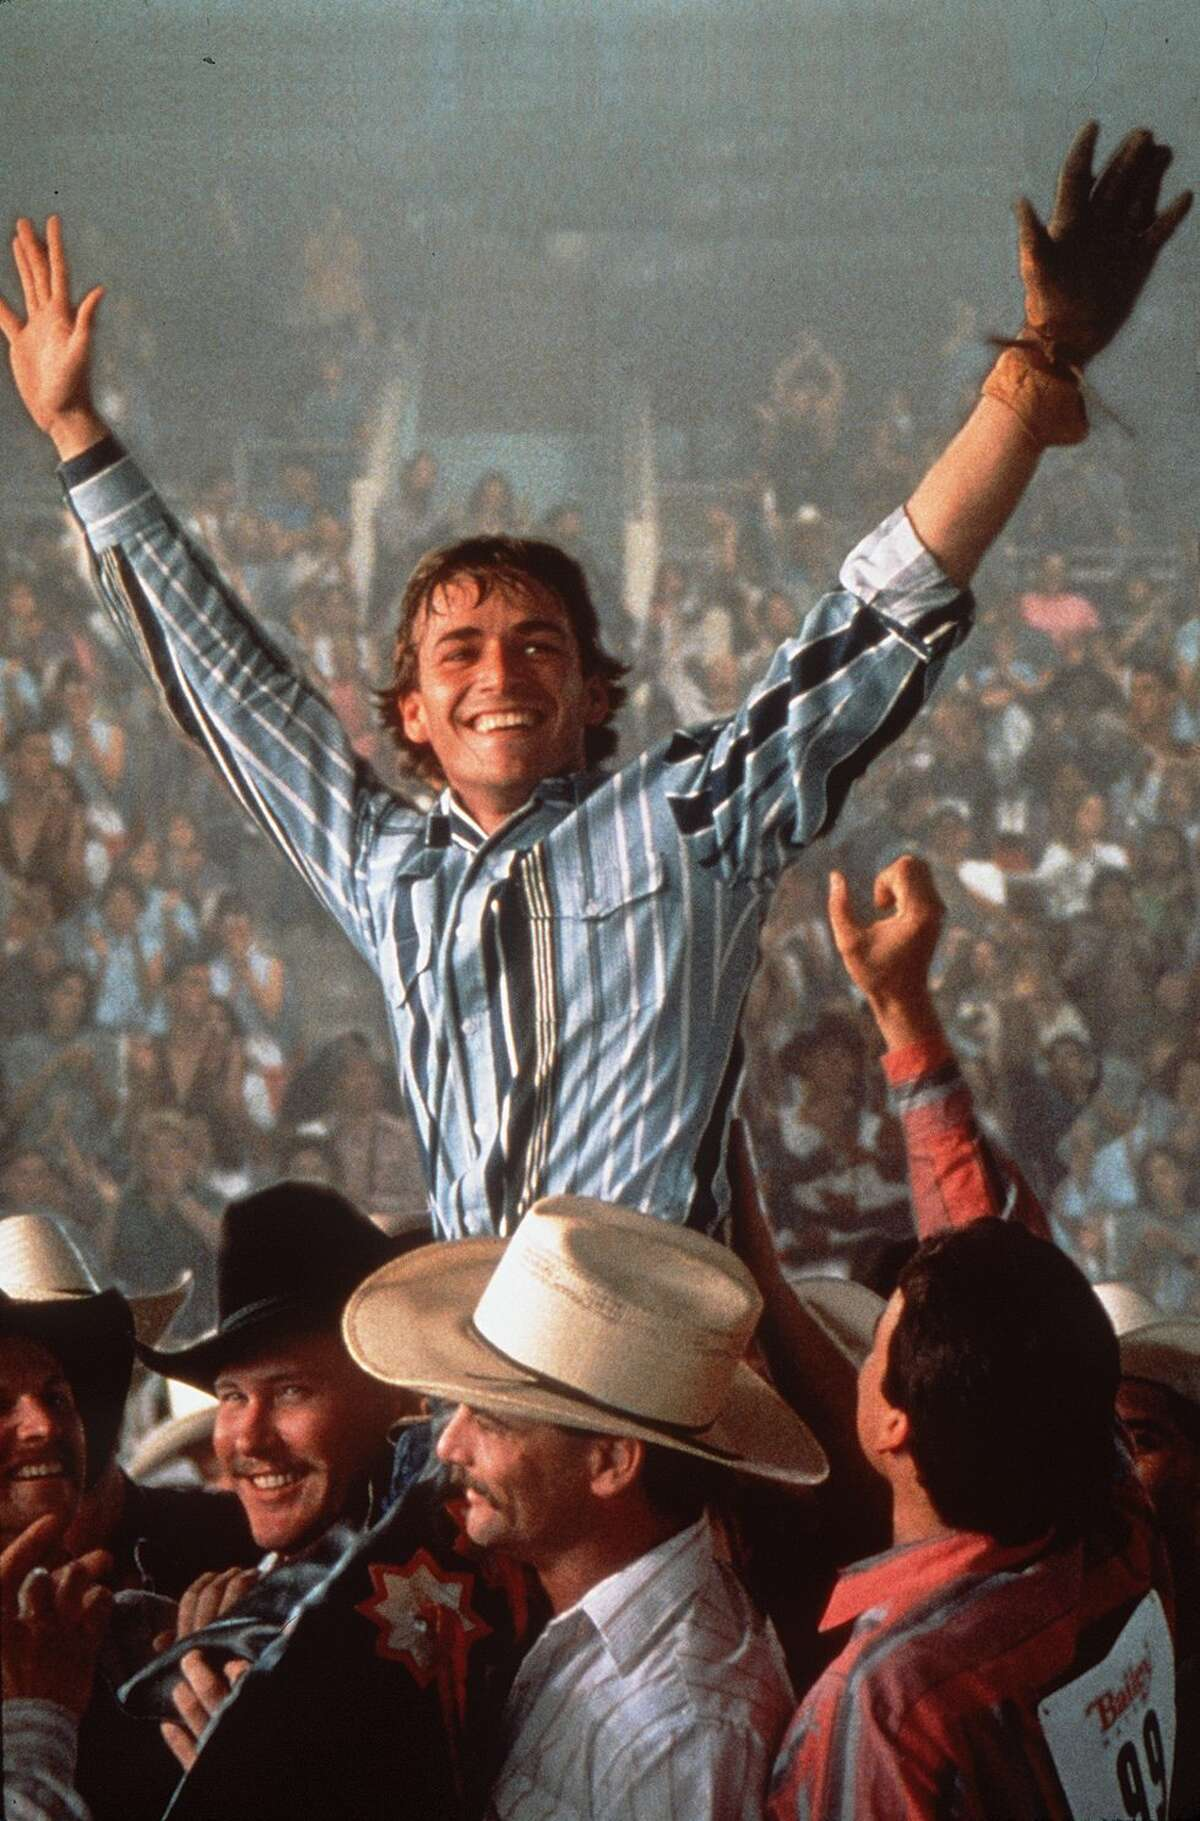 """CHRONICLE 02/25/94 // LUKE PERRY PLAYS YOUNG RODEO STAR LANE FROST IN """"8 SECONDS."""""""